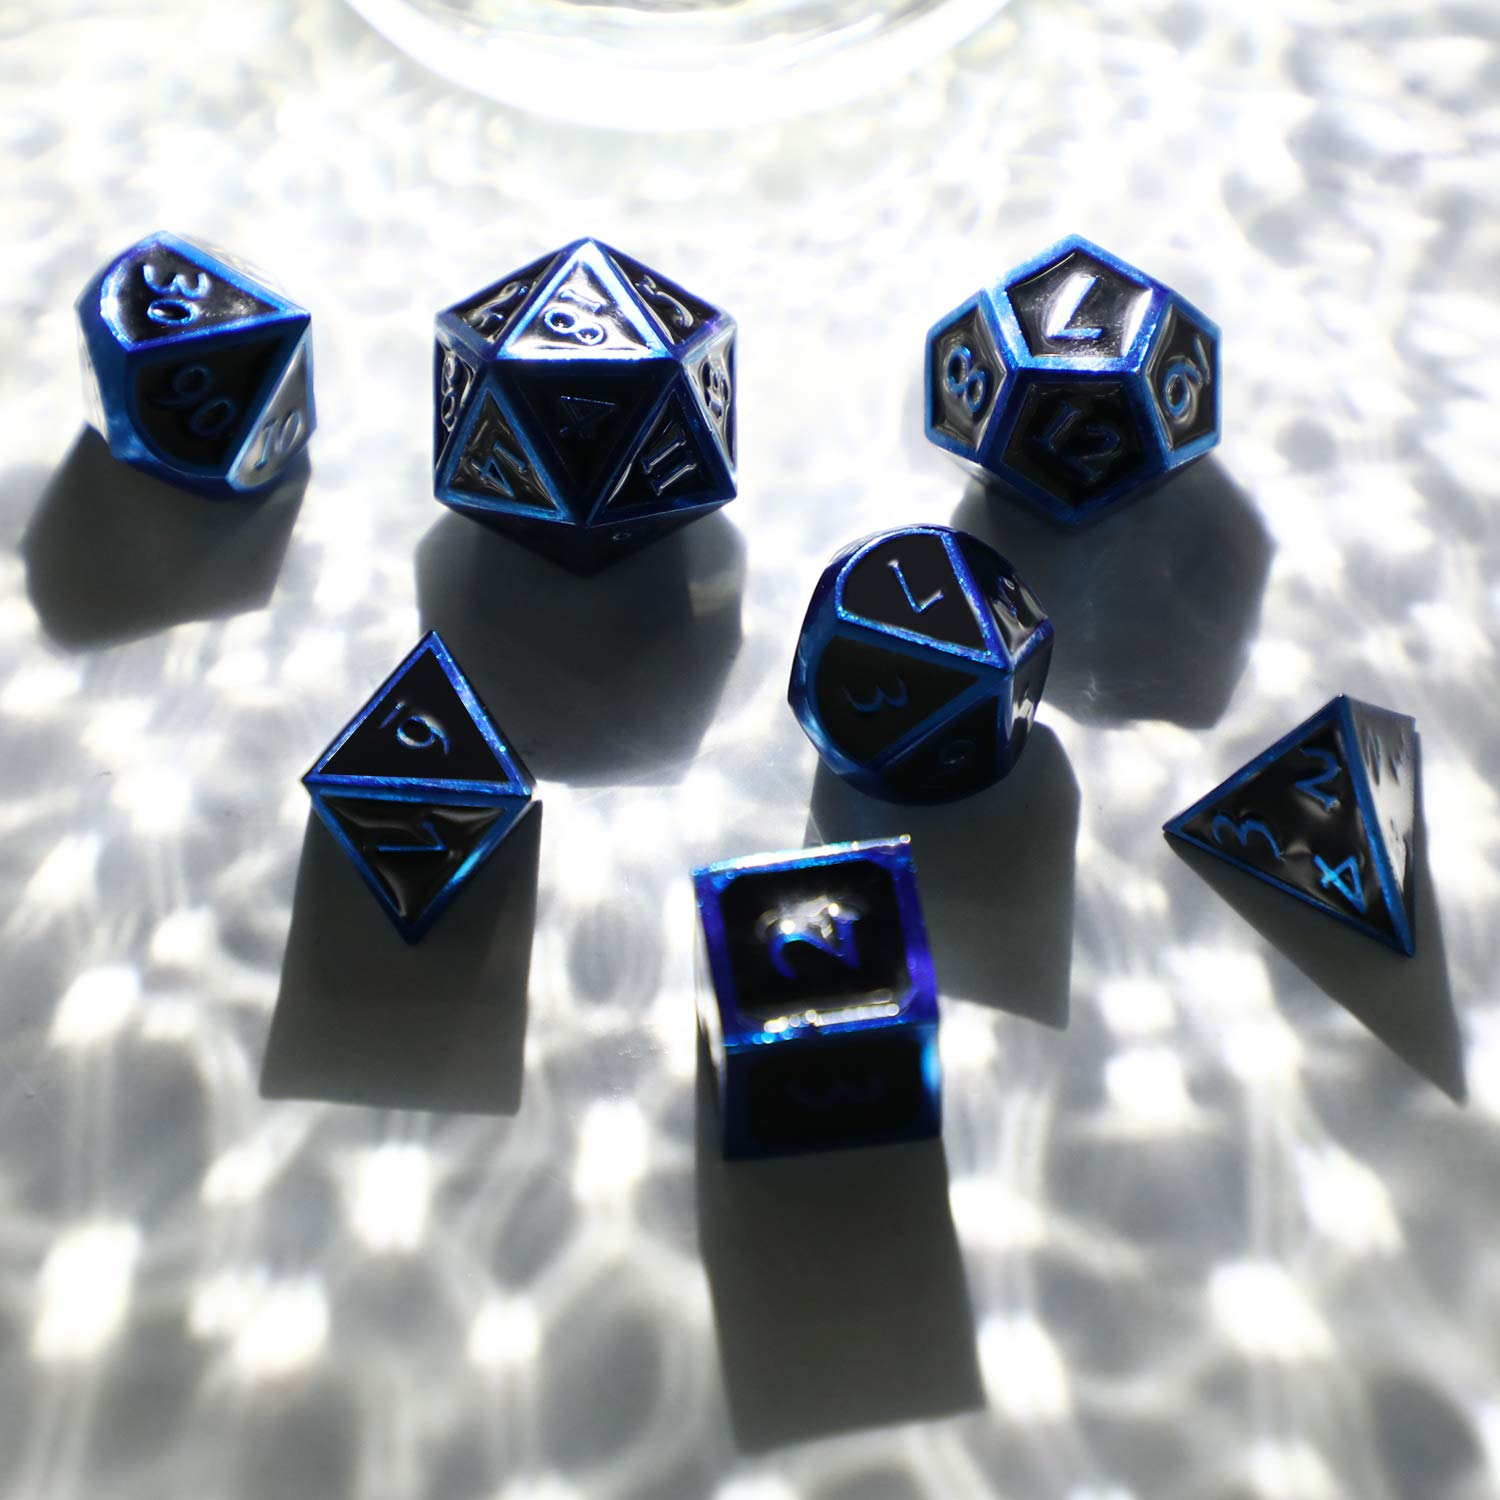 Hestya 7 Pieces Metal Dices Set DND Game Polyhedral Solid Metal D&D Dice Set with Storage Bag and Zinc Alloy with Enamel for Role Playing Game Dungeons and Dragons (Blue Edge Black) by Hestya (Image #5)